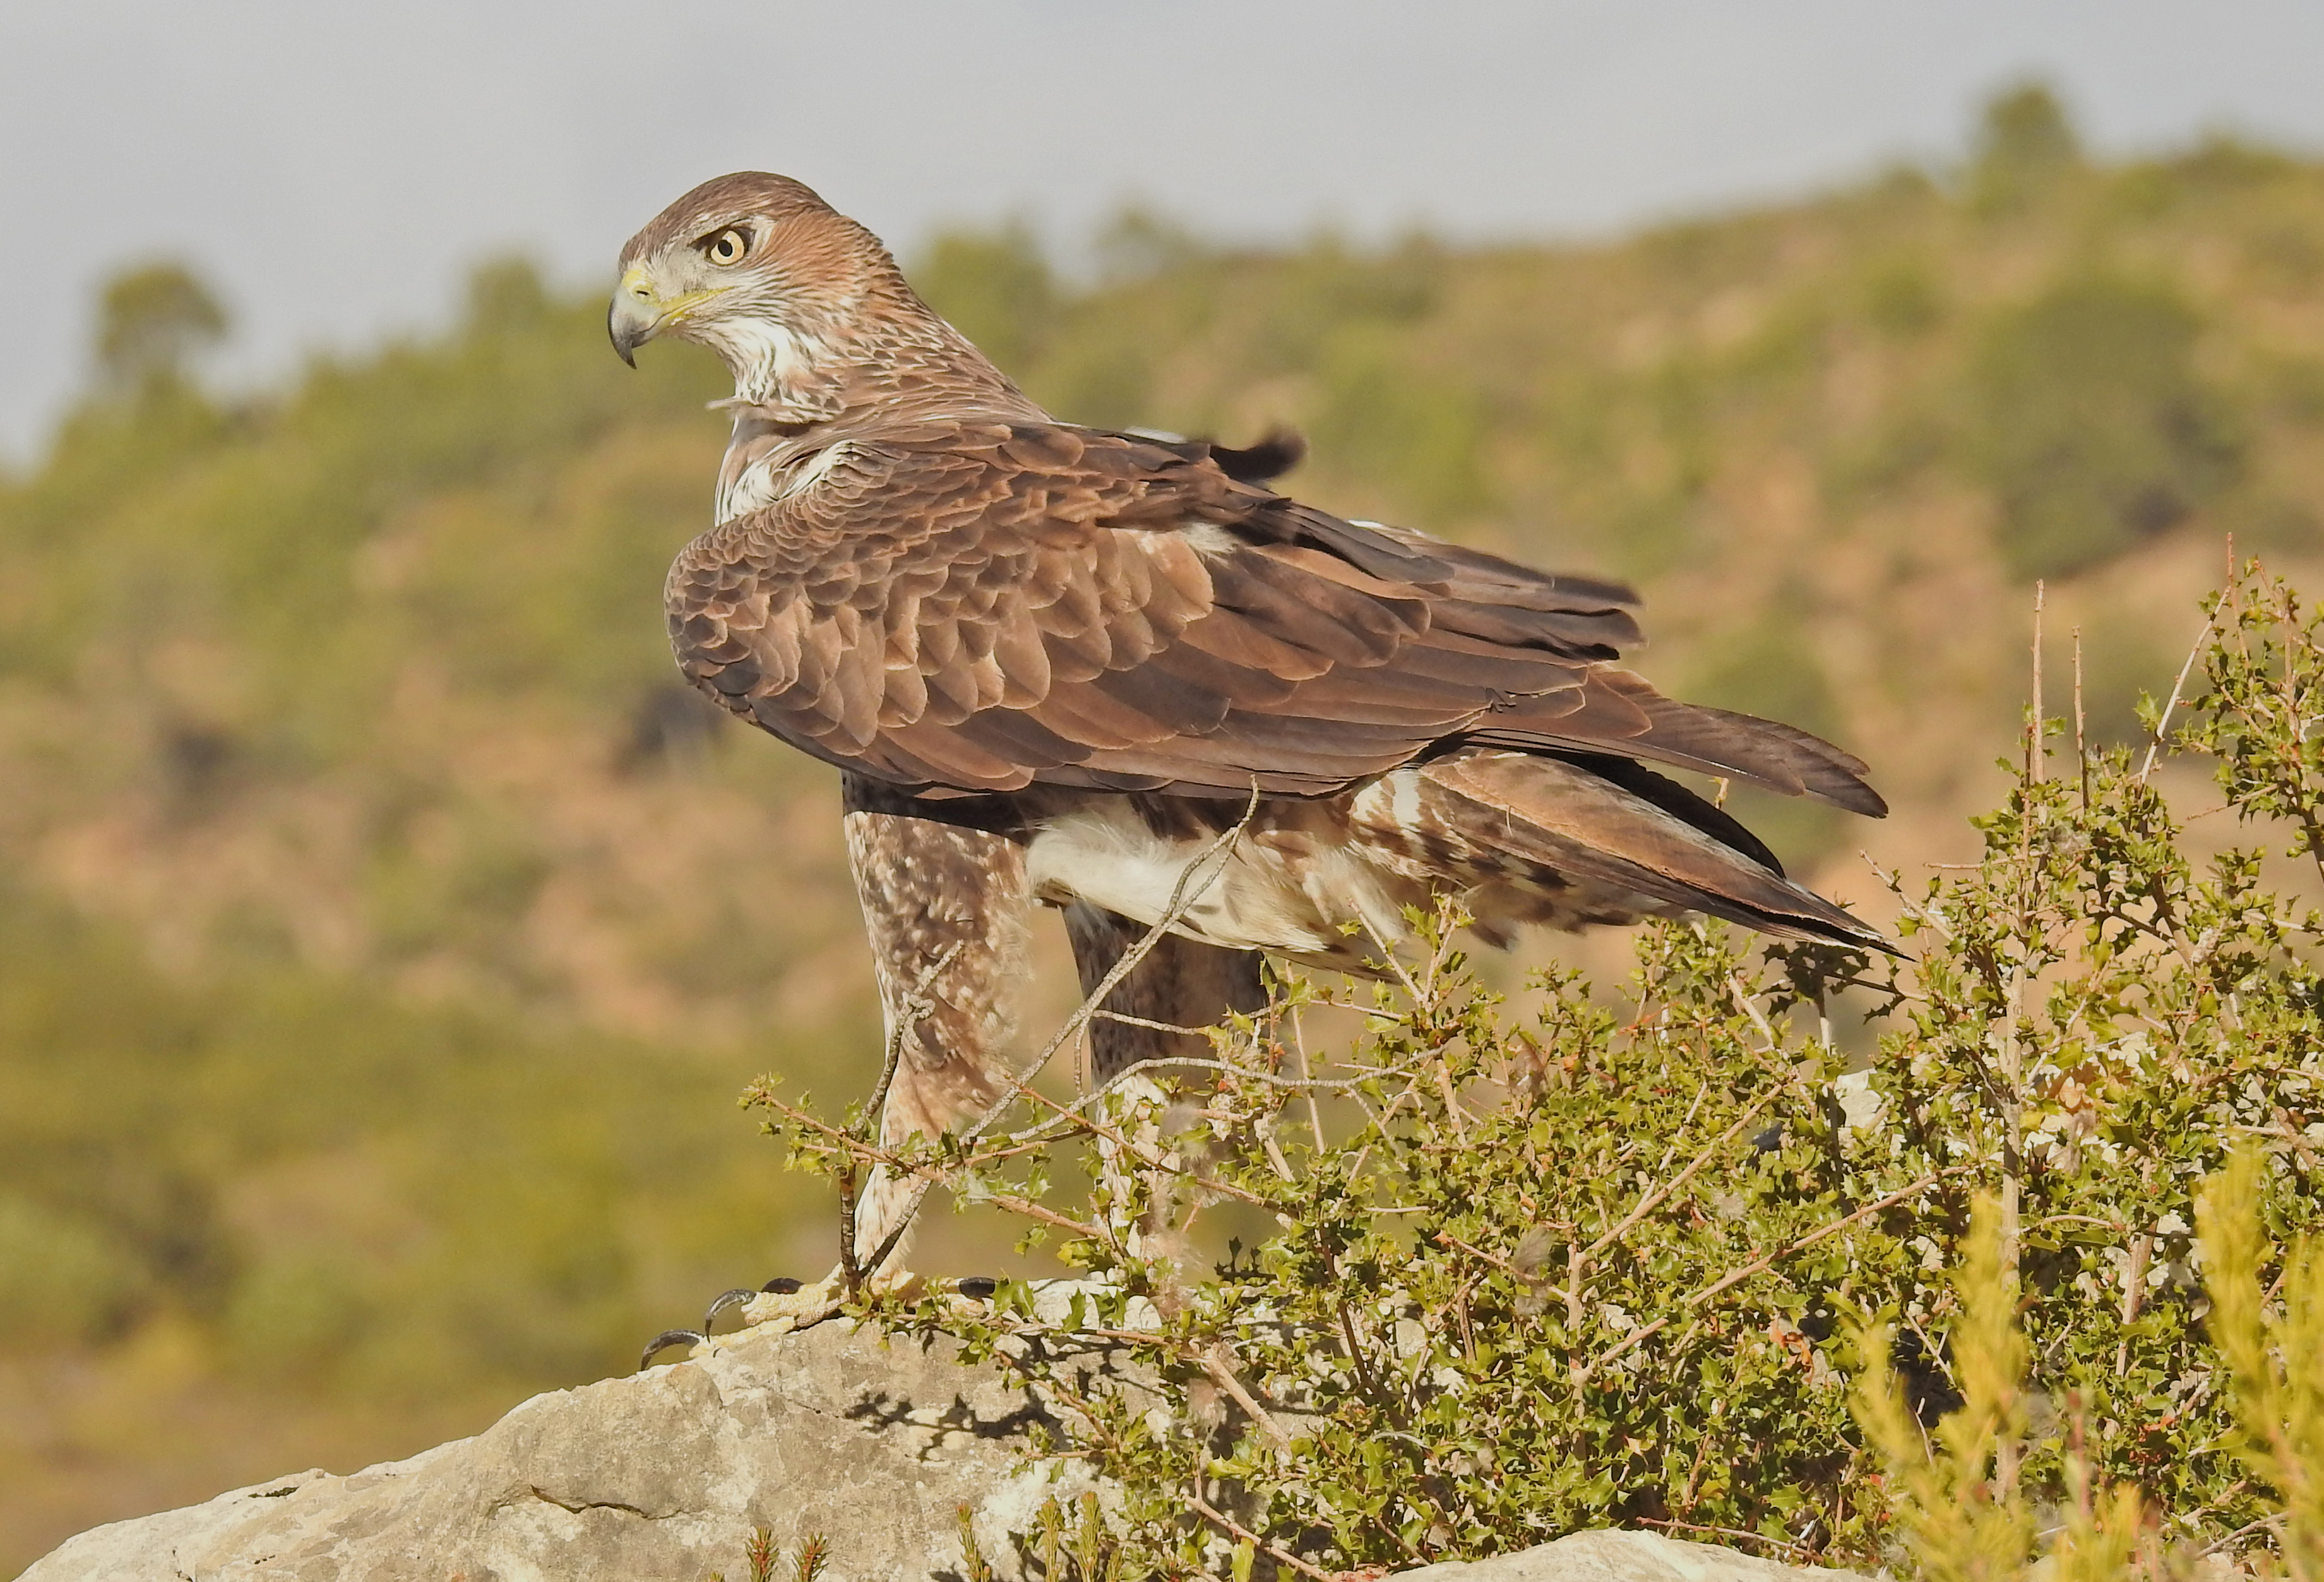 7 Day Bird Photography Trip. - Valencia Birding - Guided Bird ...